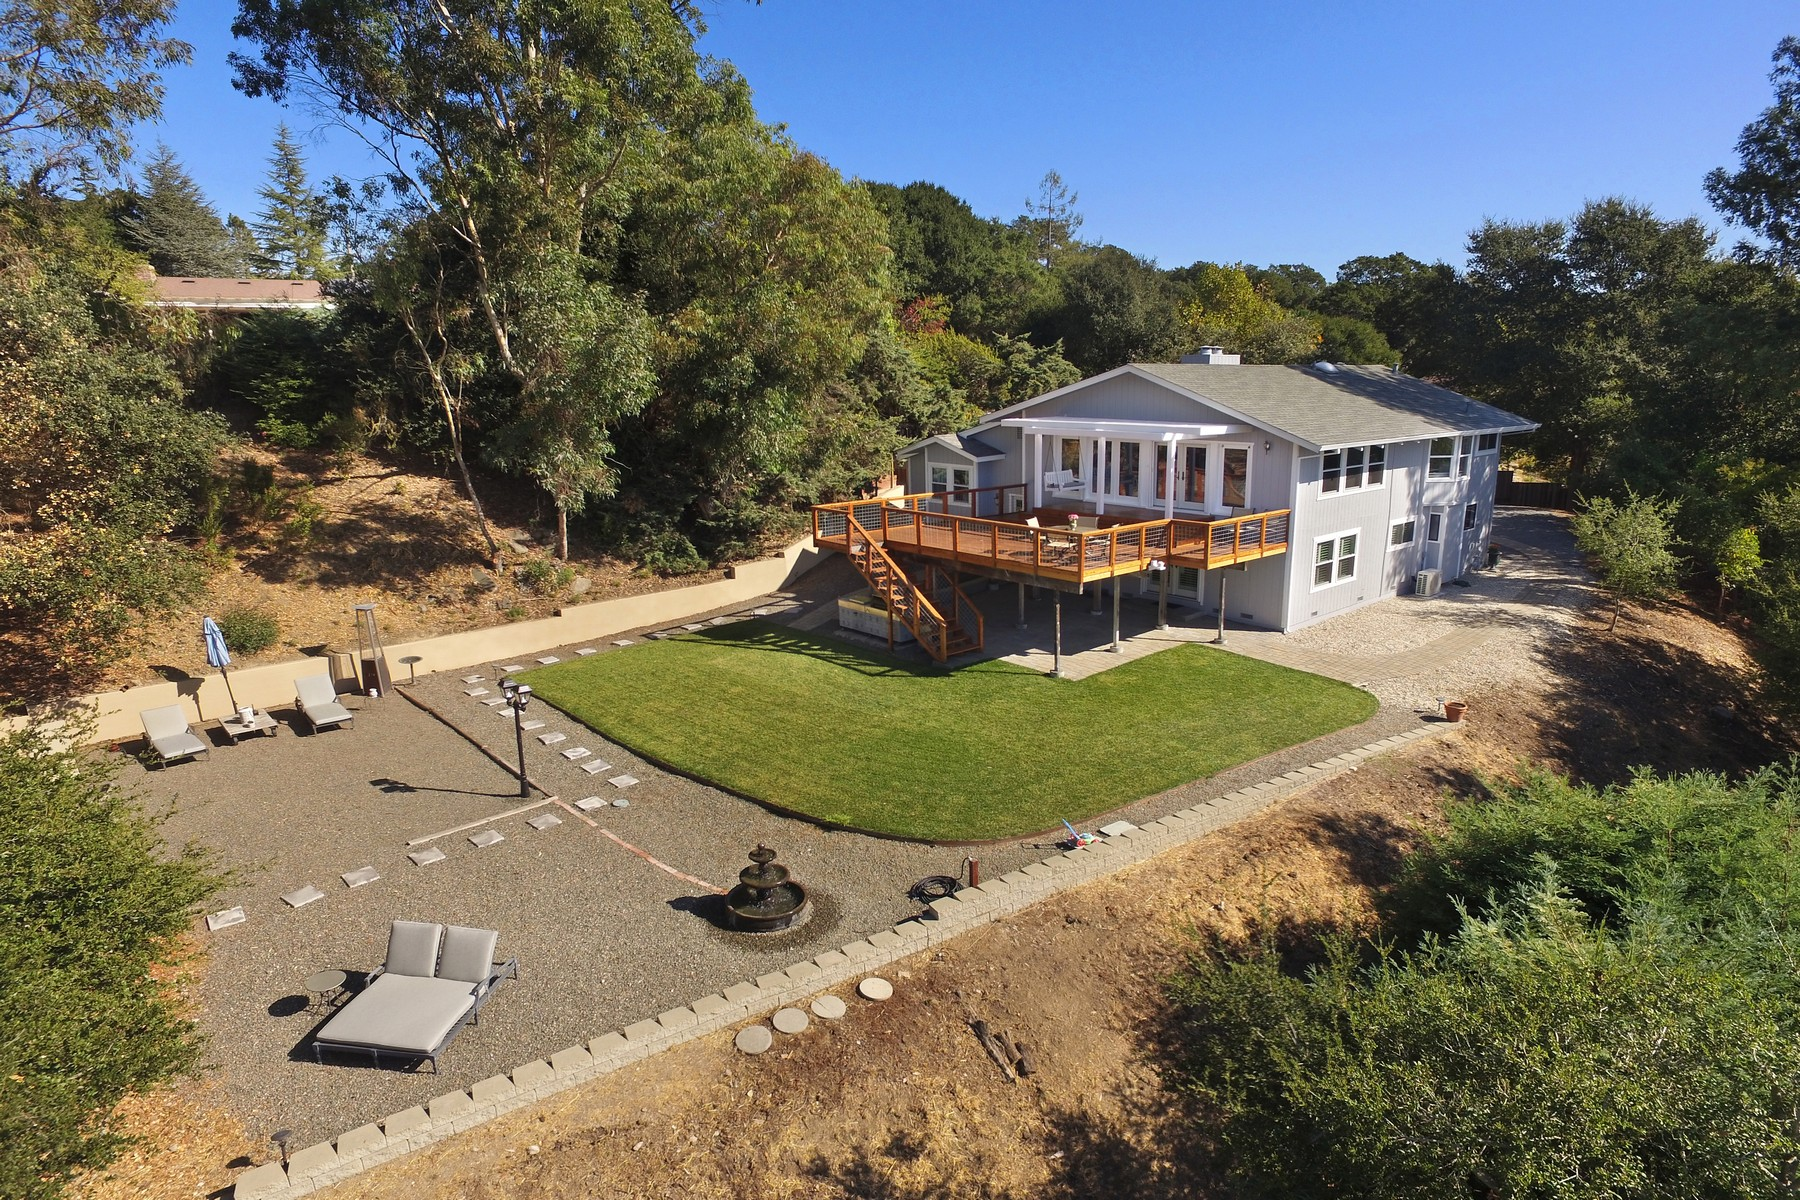 Single Family Homes for Sale at Country in the City 2245 Sycamore Avenue Santa Rosa, California 95404 United States